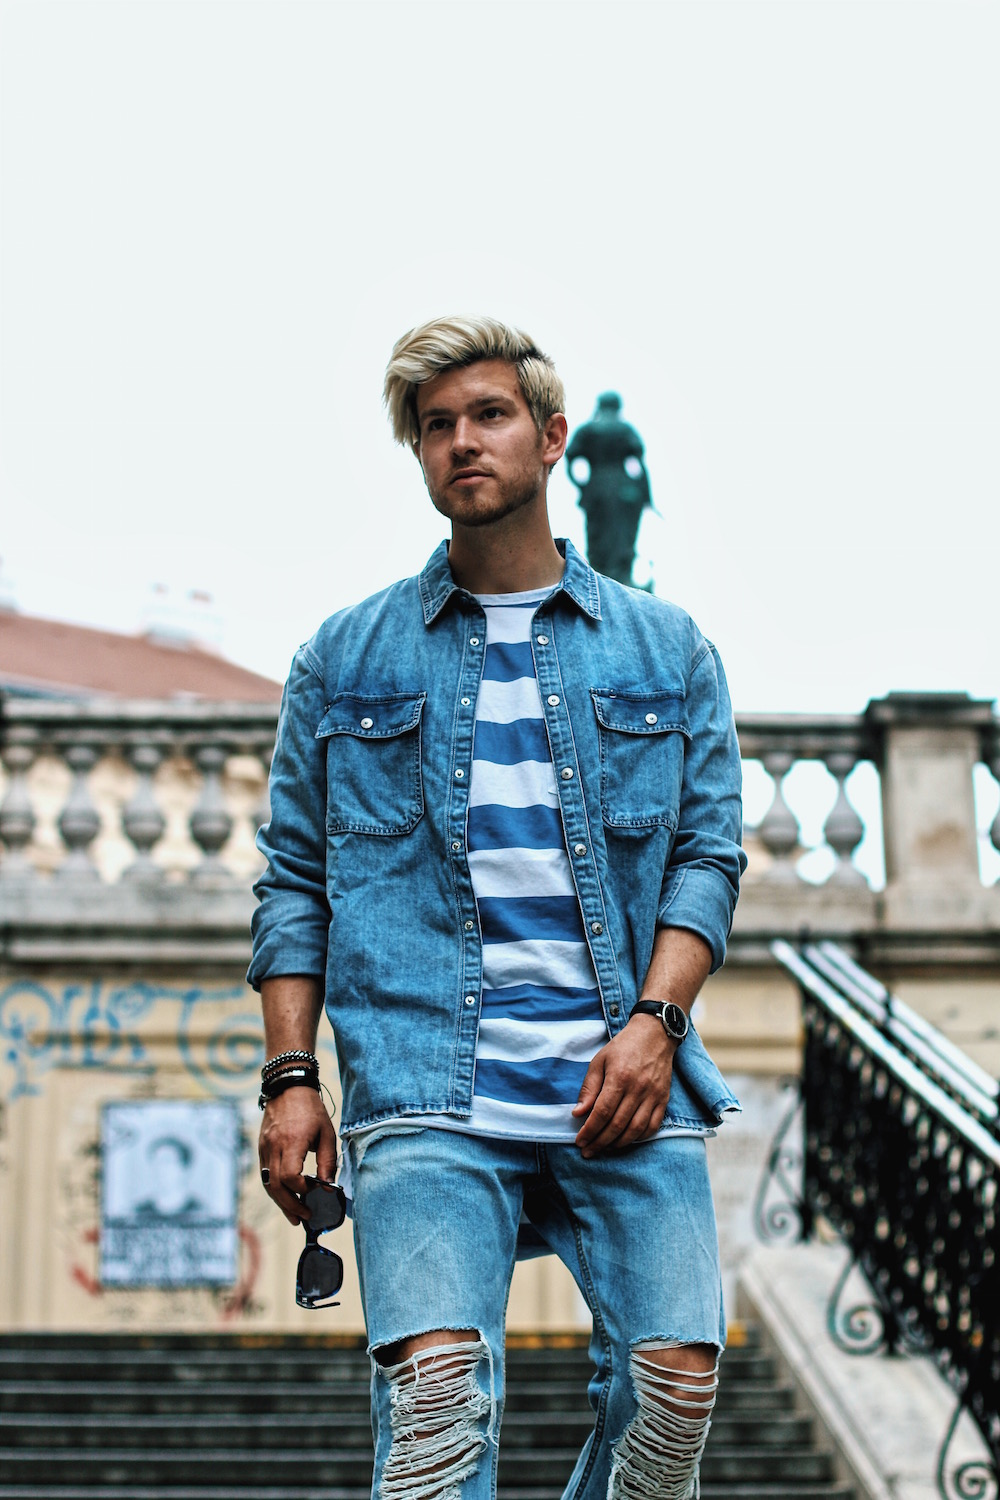 Outfit H&M Denim on Denim Look Ripped Jeans Denim Shirt Striped Tee by Meanwhile in Awesometown Austrian Mensfashion and Lifestyleblogger 7